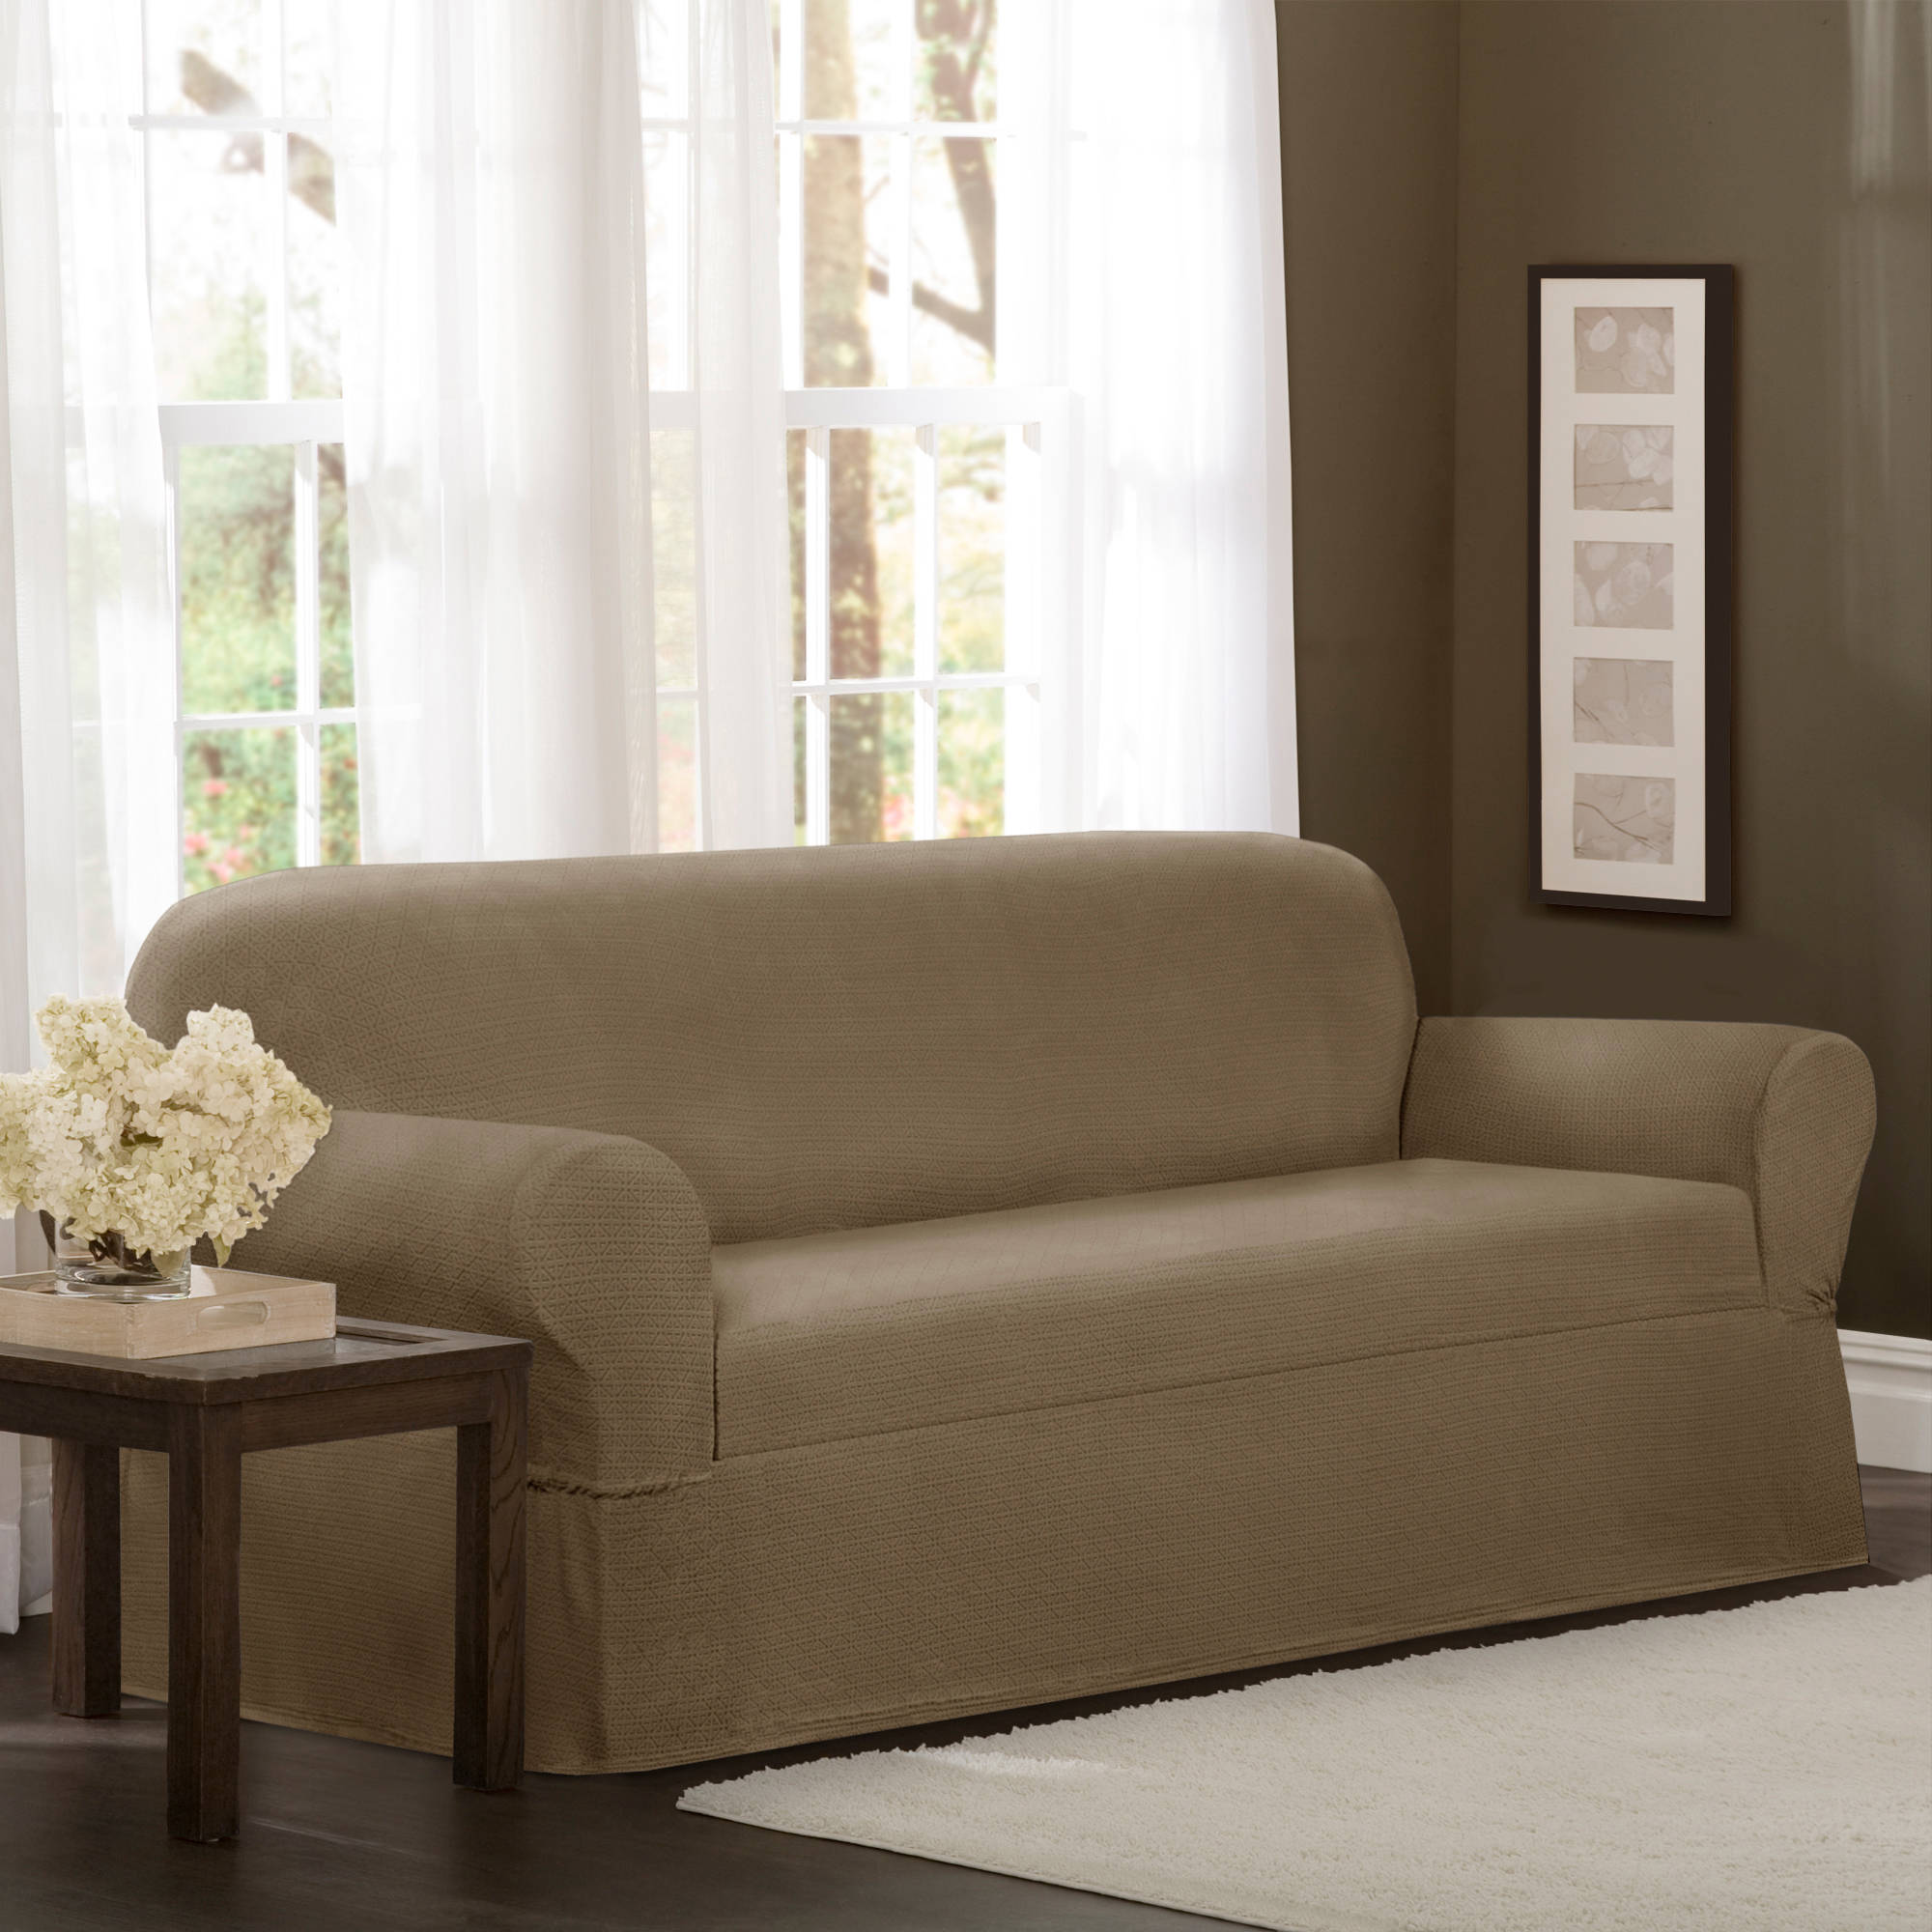 Maytex Torie Stretch Fabric 1-Piece Furniture Slipcover